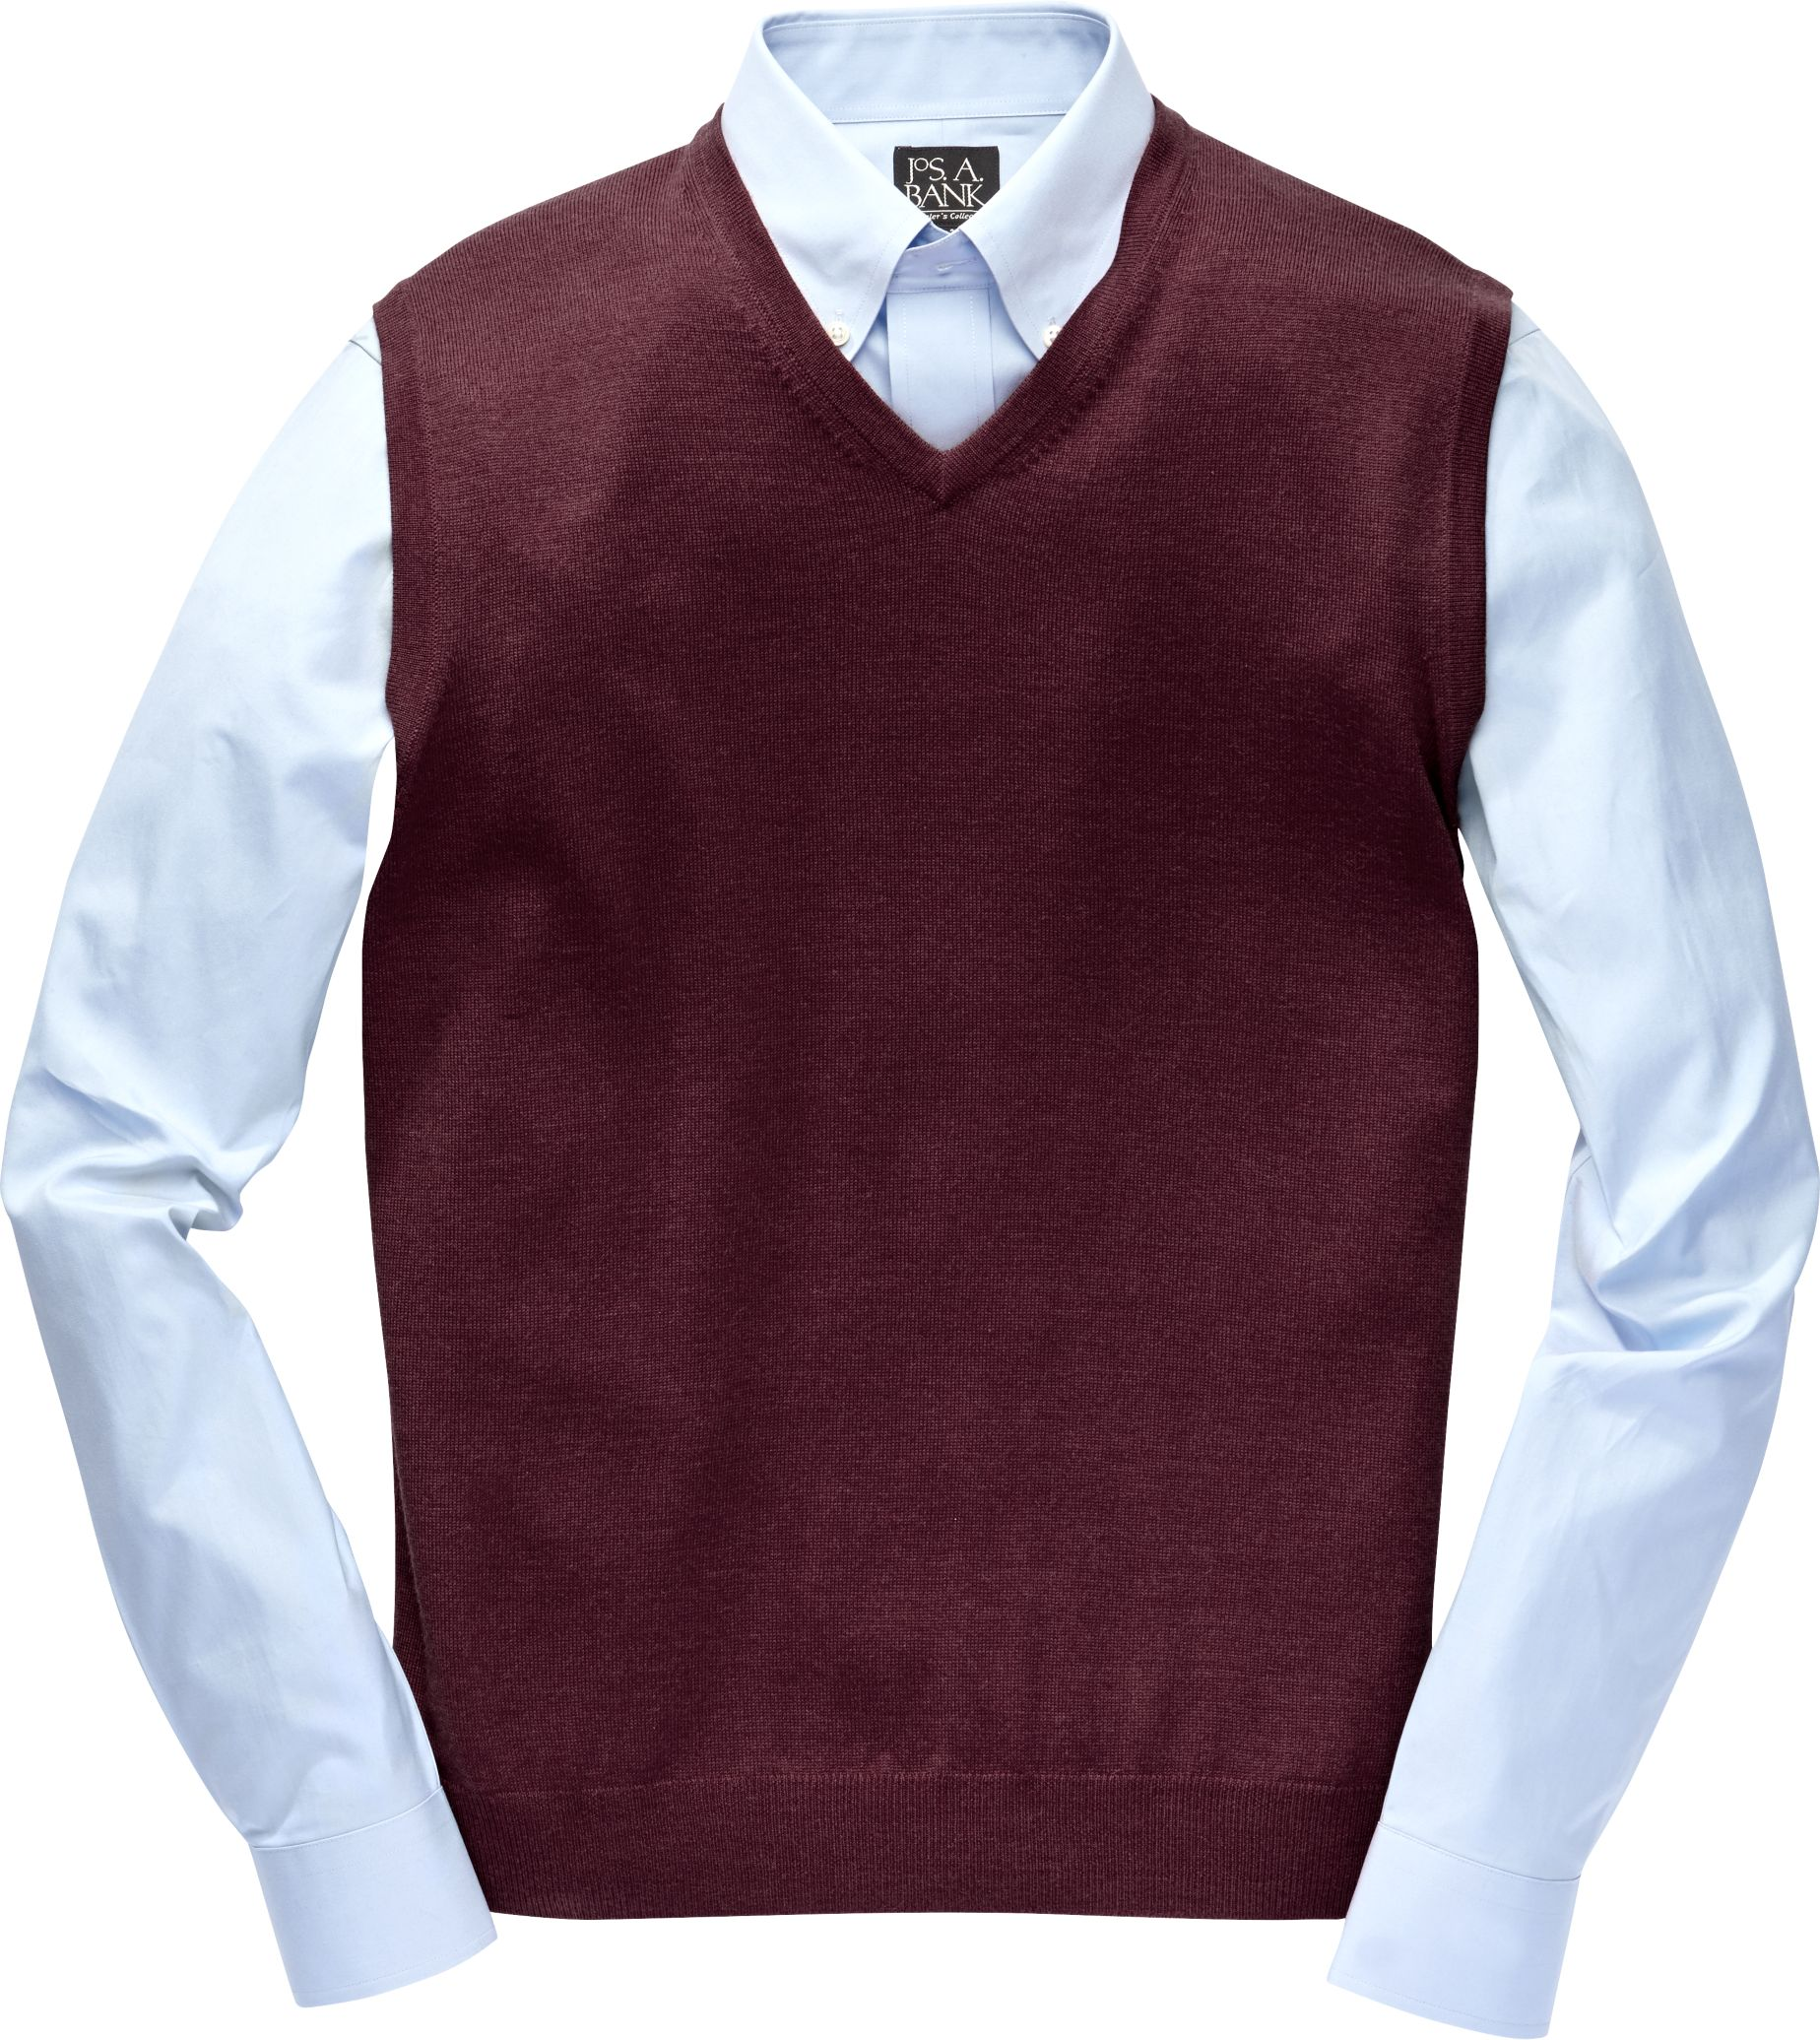 Traveler Collection Merino Wool Sweater Vest - Merino Wool ...